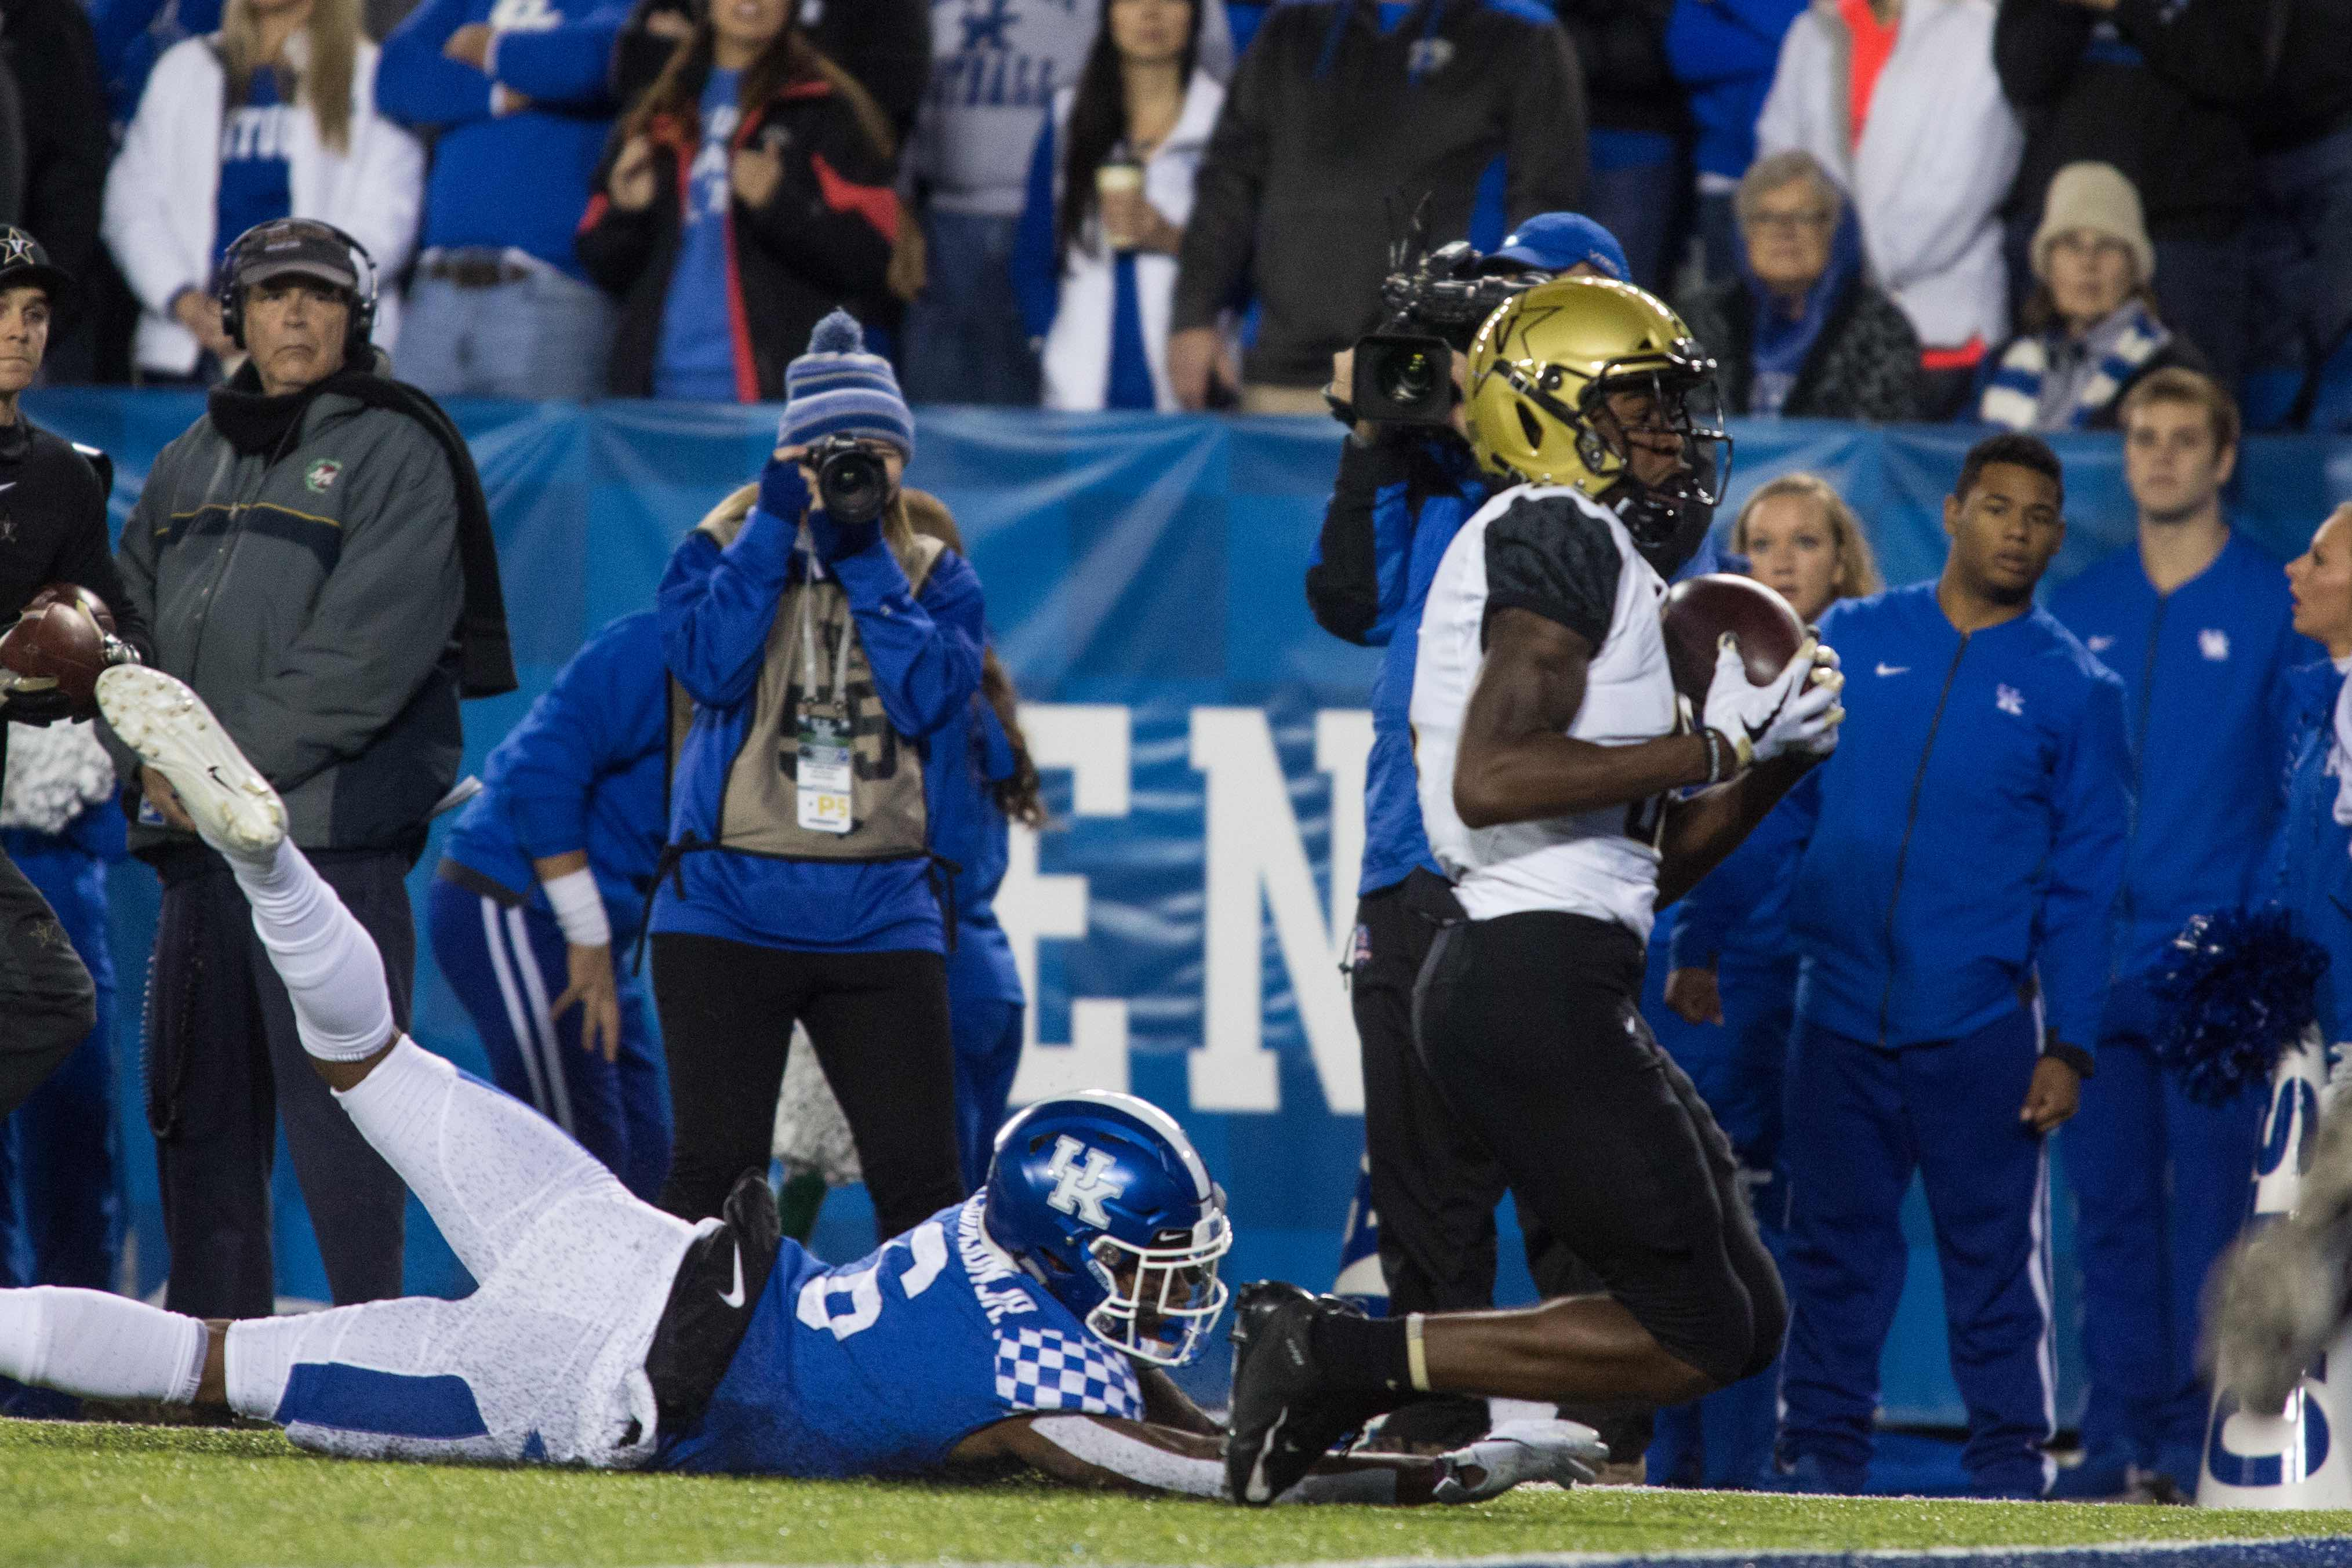 Vanderbilt squanders yet another SEC upset bid in 14-7 loss to #14 Kentucky